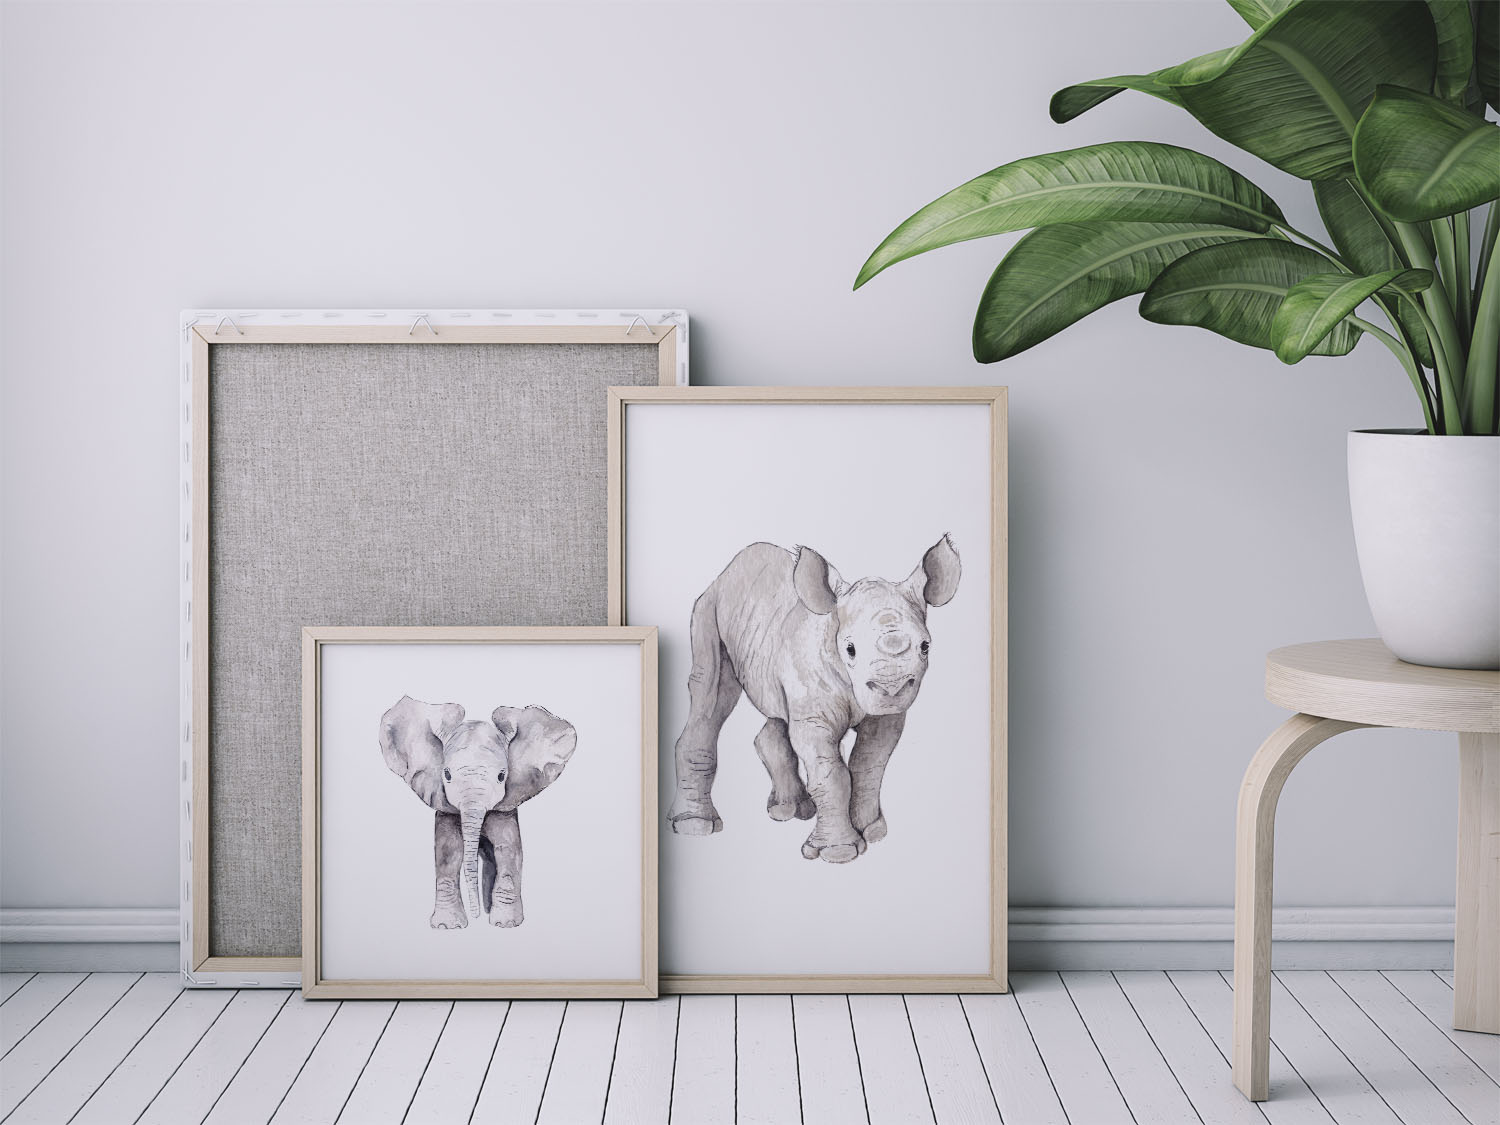 Watercolour art print of 4 cute baby animals: elephant, rhino, giraffe or lion Limited Edition, only 50 prints each  Size: A4 or A3 (unframed) Please give 1-2 weeks production,as it's printed on demand  Printed on thick textured white paper (Natural Evolution 280 g - acid free (shipped flat)  Individually signed with a pencil in the right hand corner.  ** Please don't use pictures as reference to size - this is only for presentation.